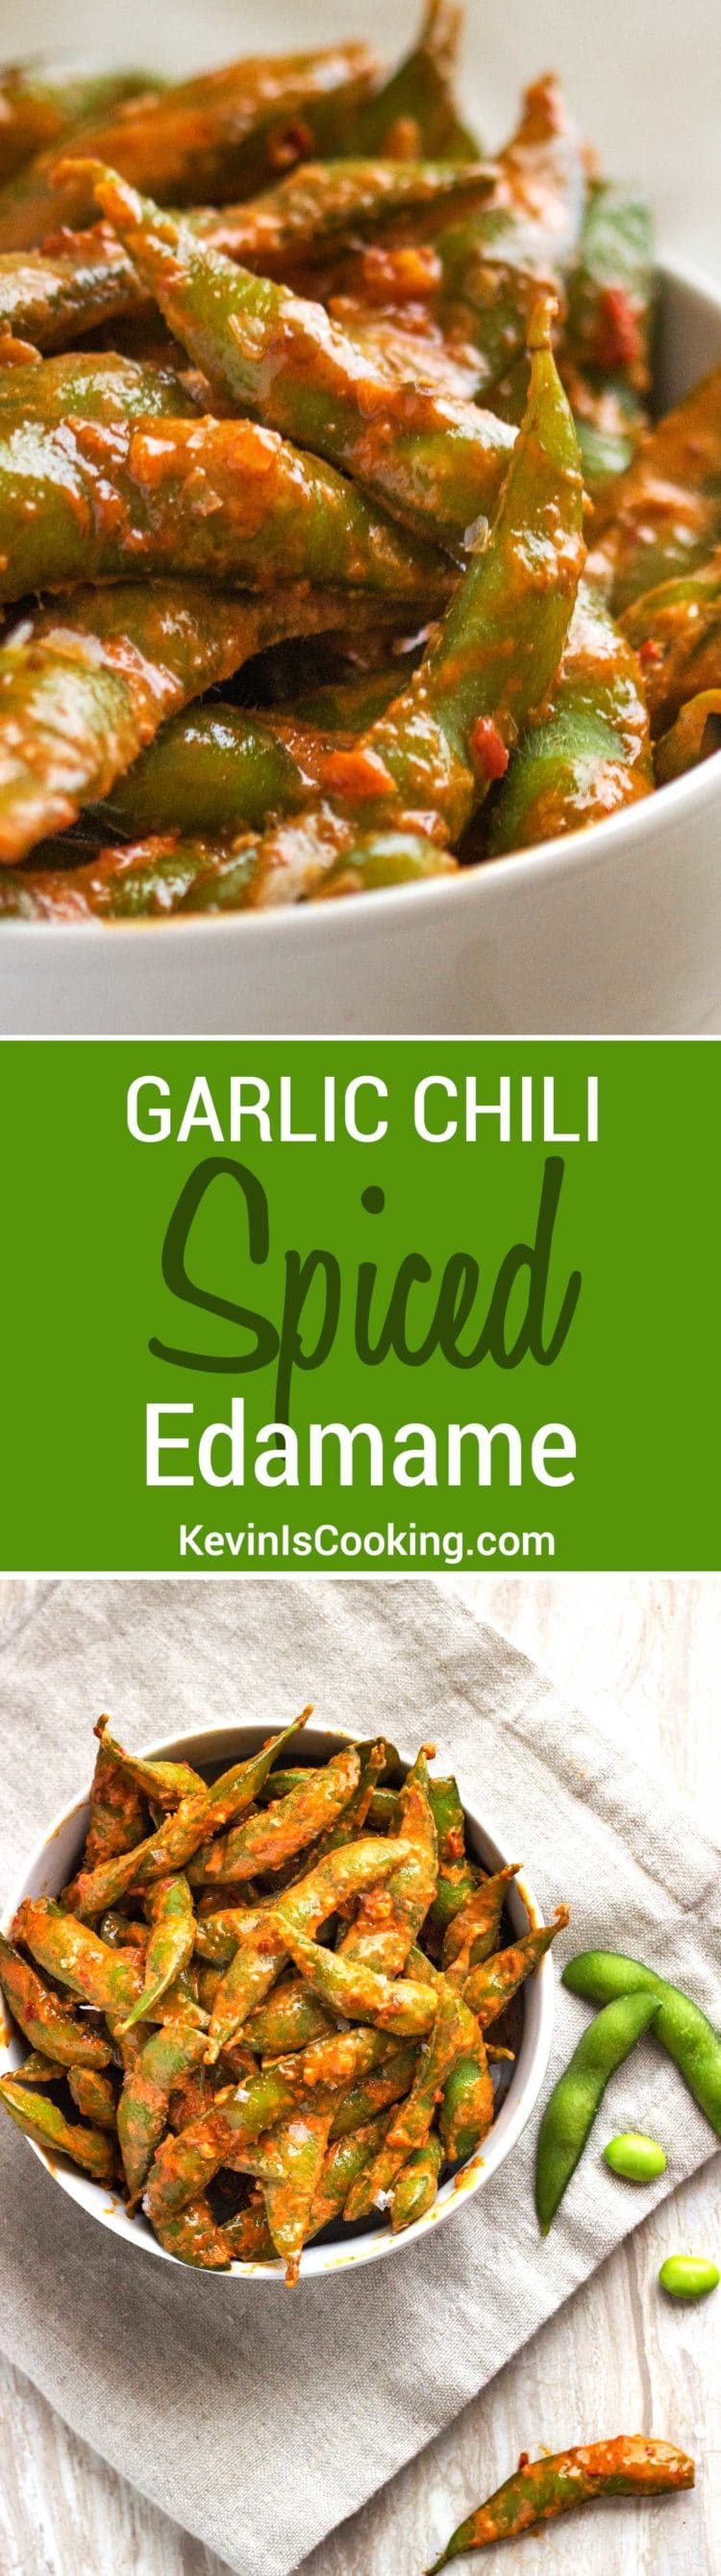 Garlic Chili Spicy Edamame are an easy to prepare snack that can be on the table in 10 minutes. Made with a wonderful creamy garlic and chili paste sauce!